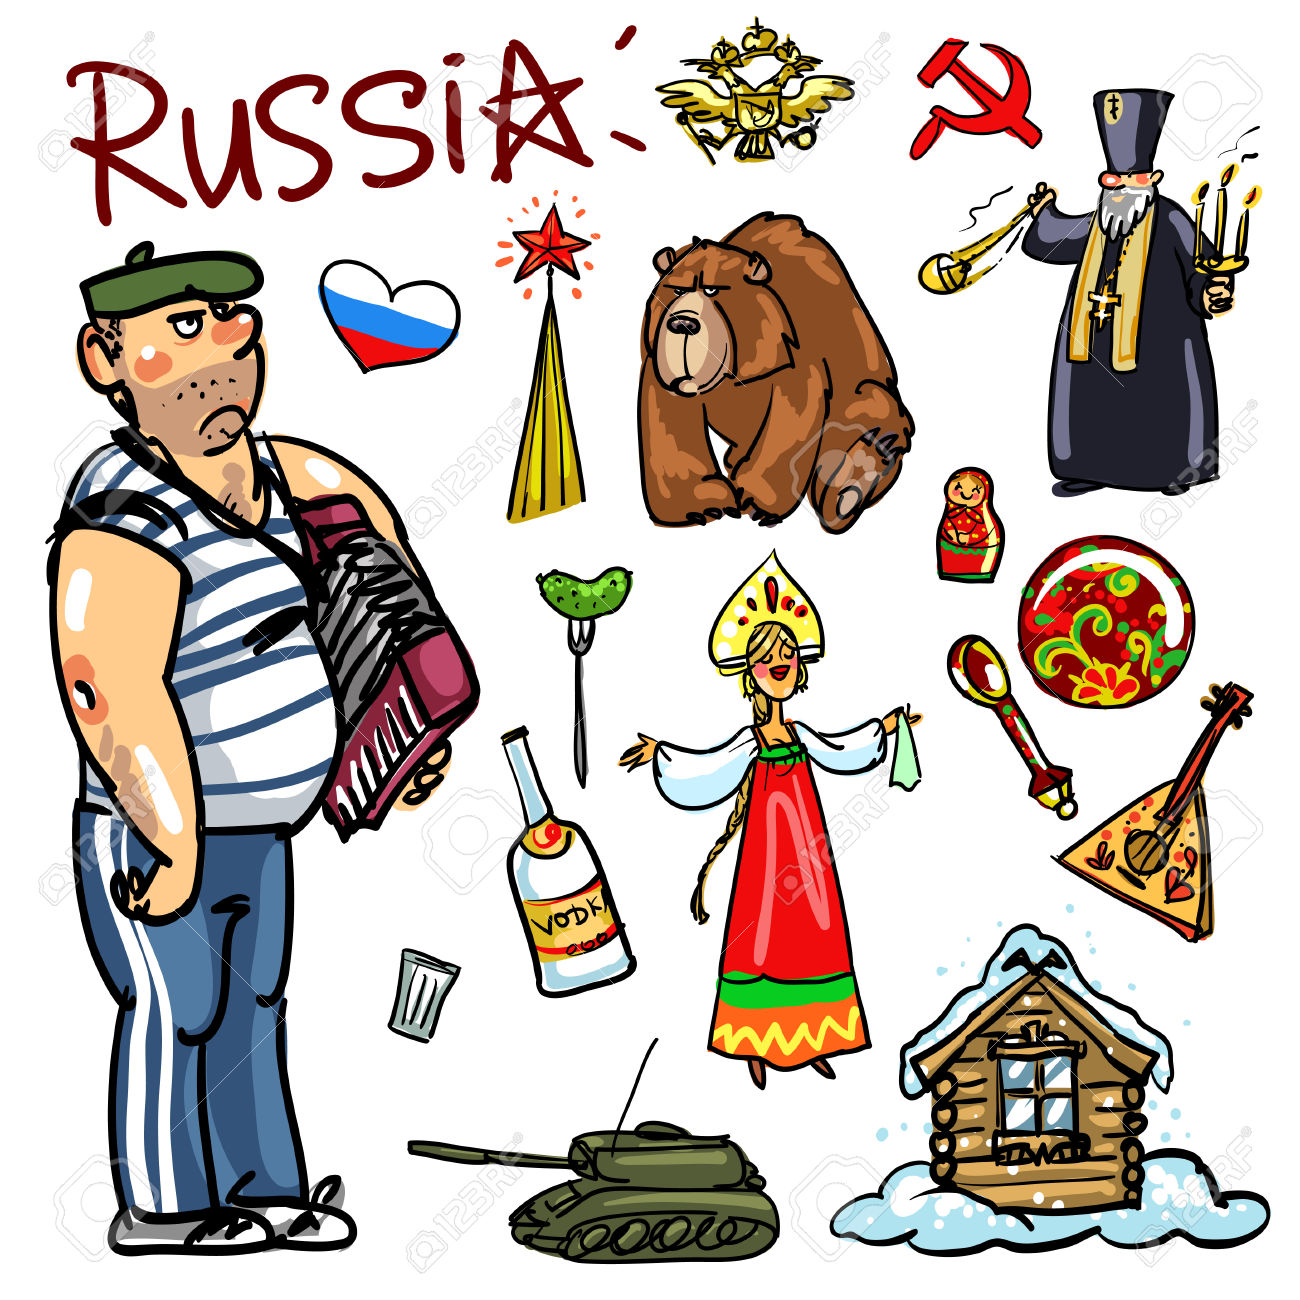 44411818-Set-of-cartoon-hand-drawn-travelling-attractions-Russia-Stock-Vector.jpg